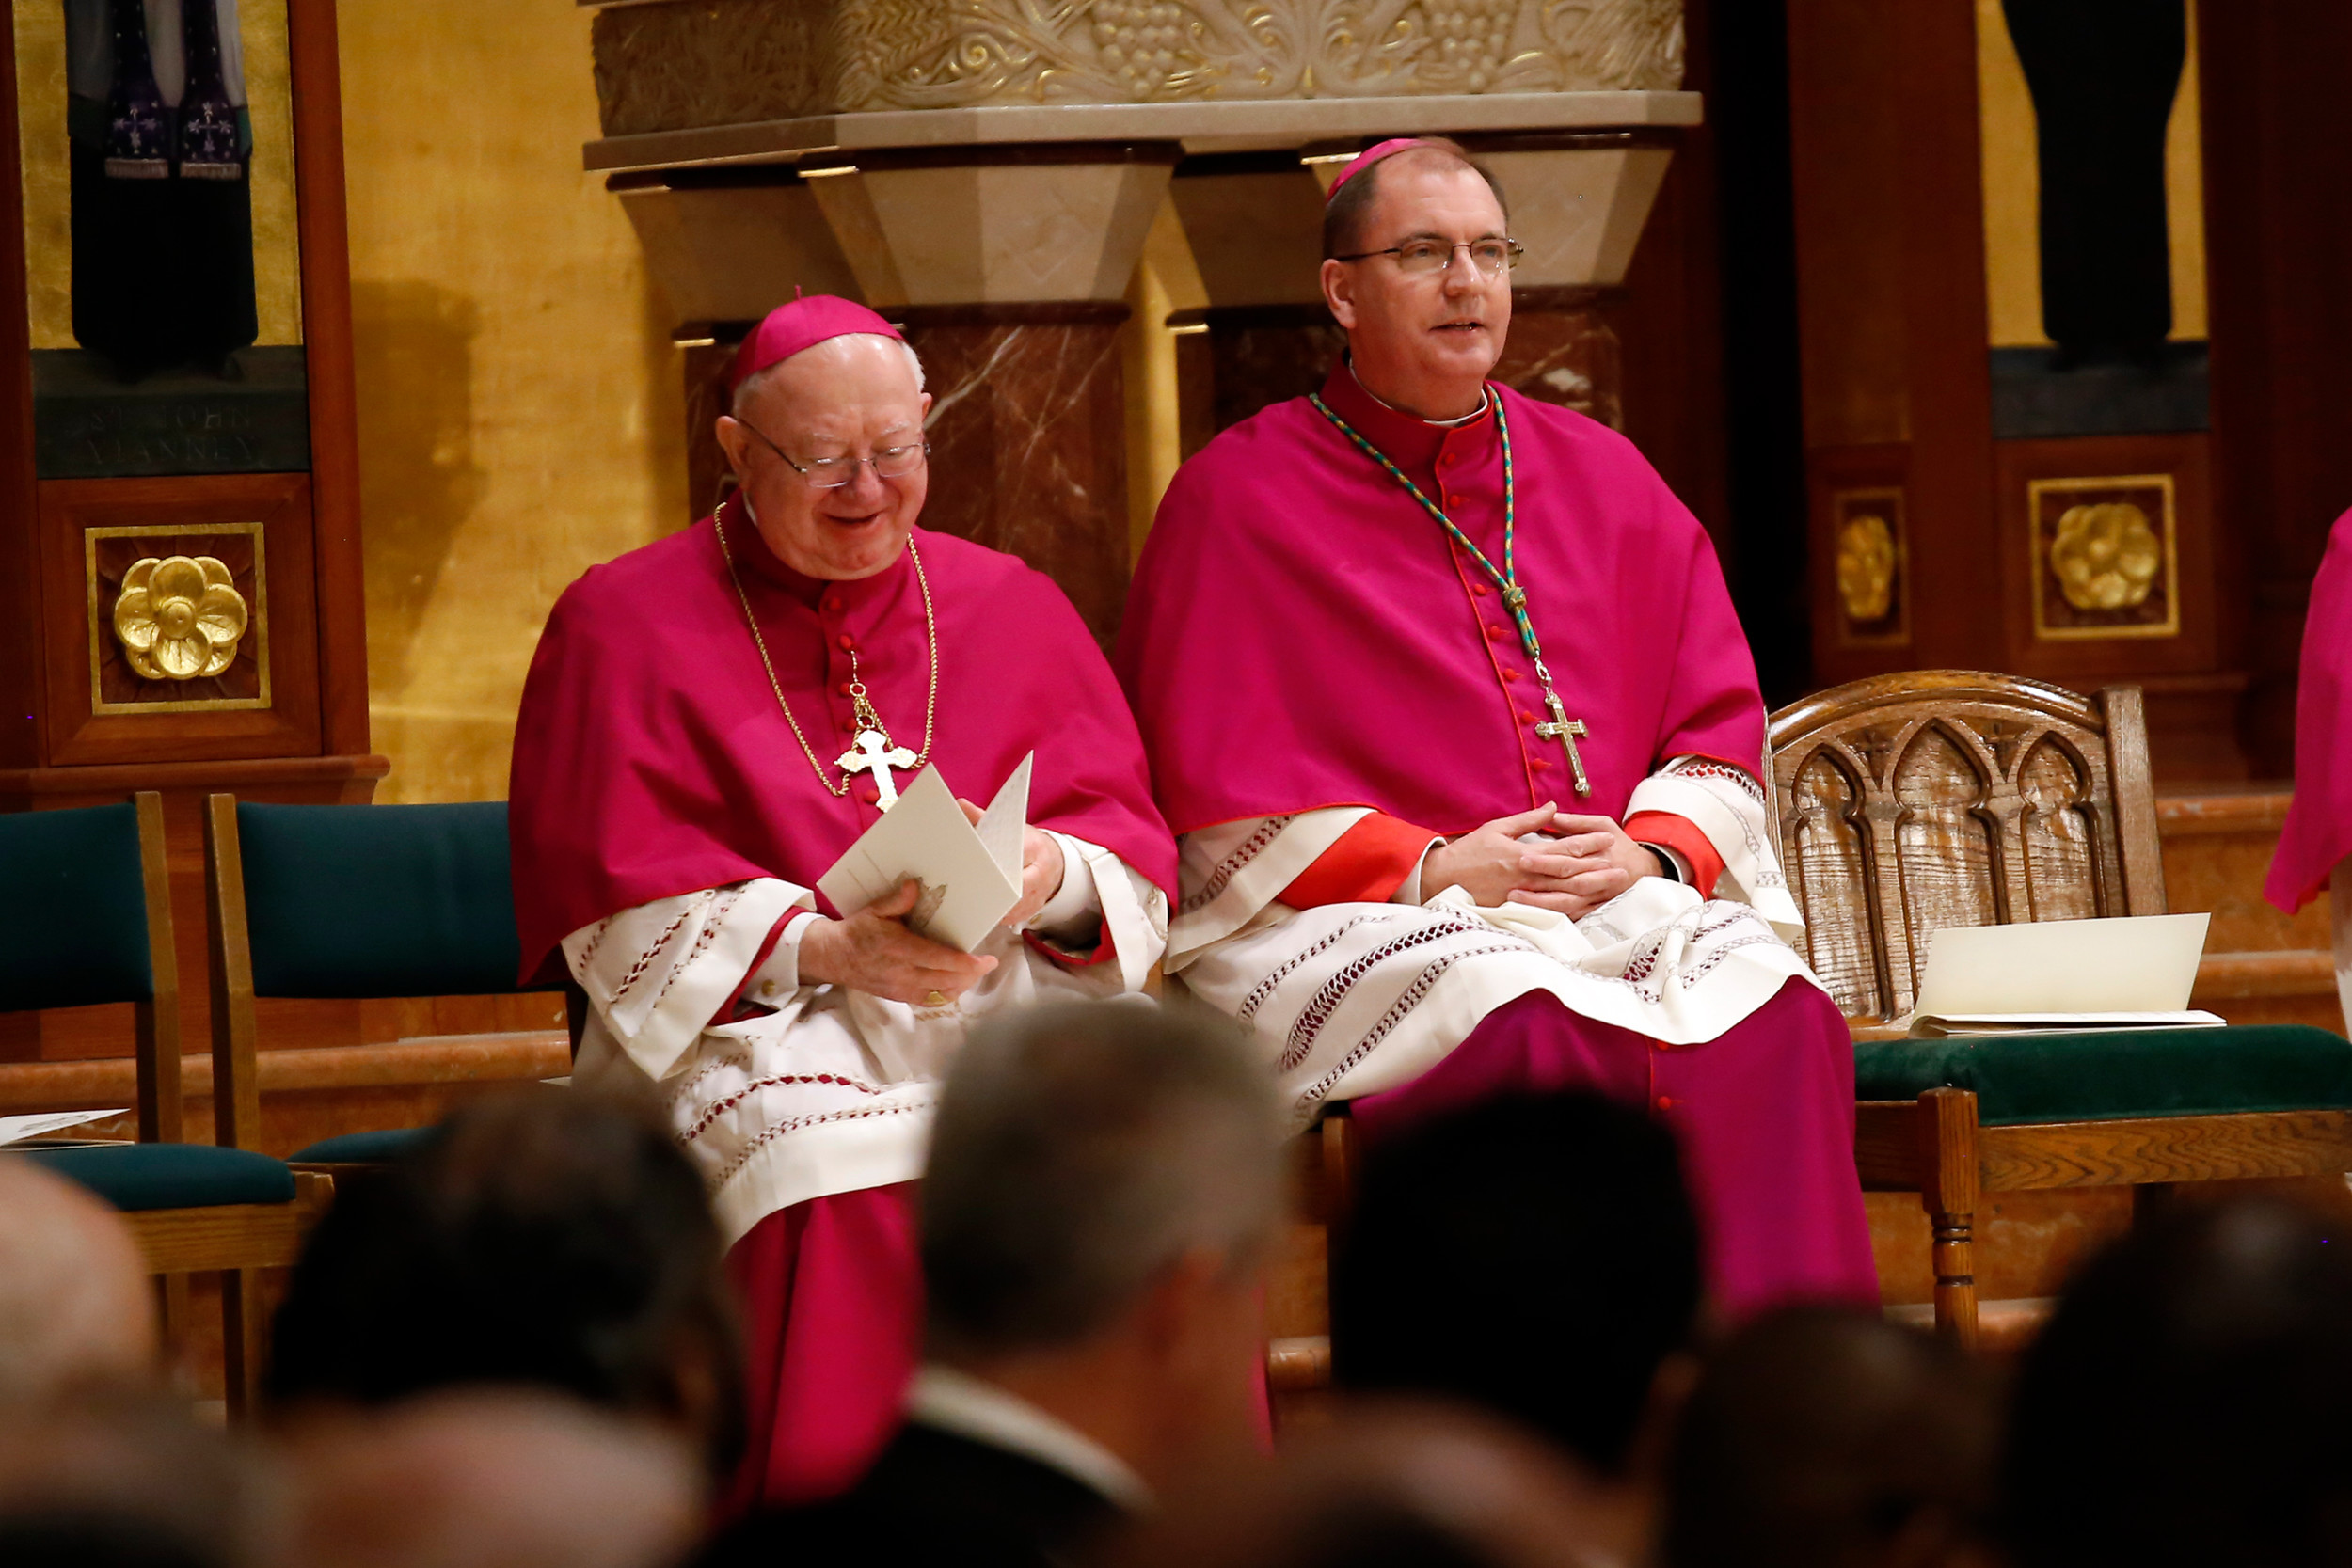 Bishop William Murphy, left, and Bishop John Barres shared the altar at St. Agnes Cathedral in Rockville Centre during a vespers prayer service on Monday night, ahead of Barres's Mass of Installation on Tuesday afternoon.